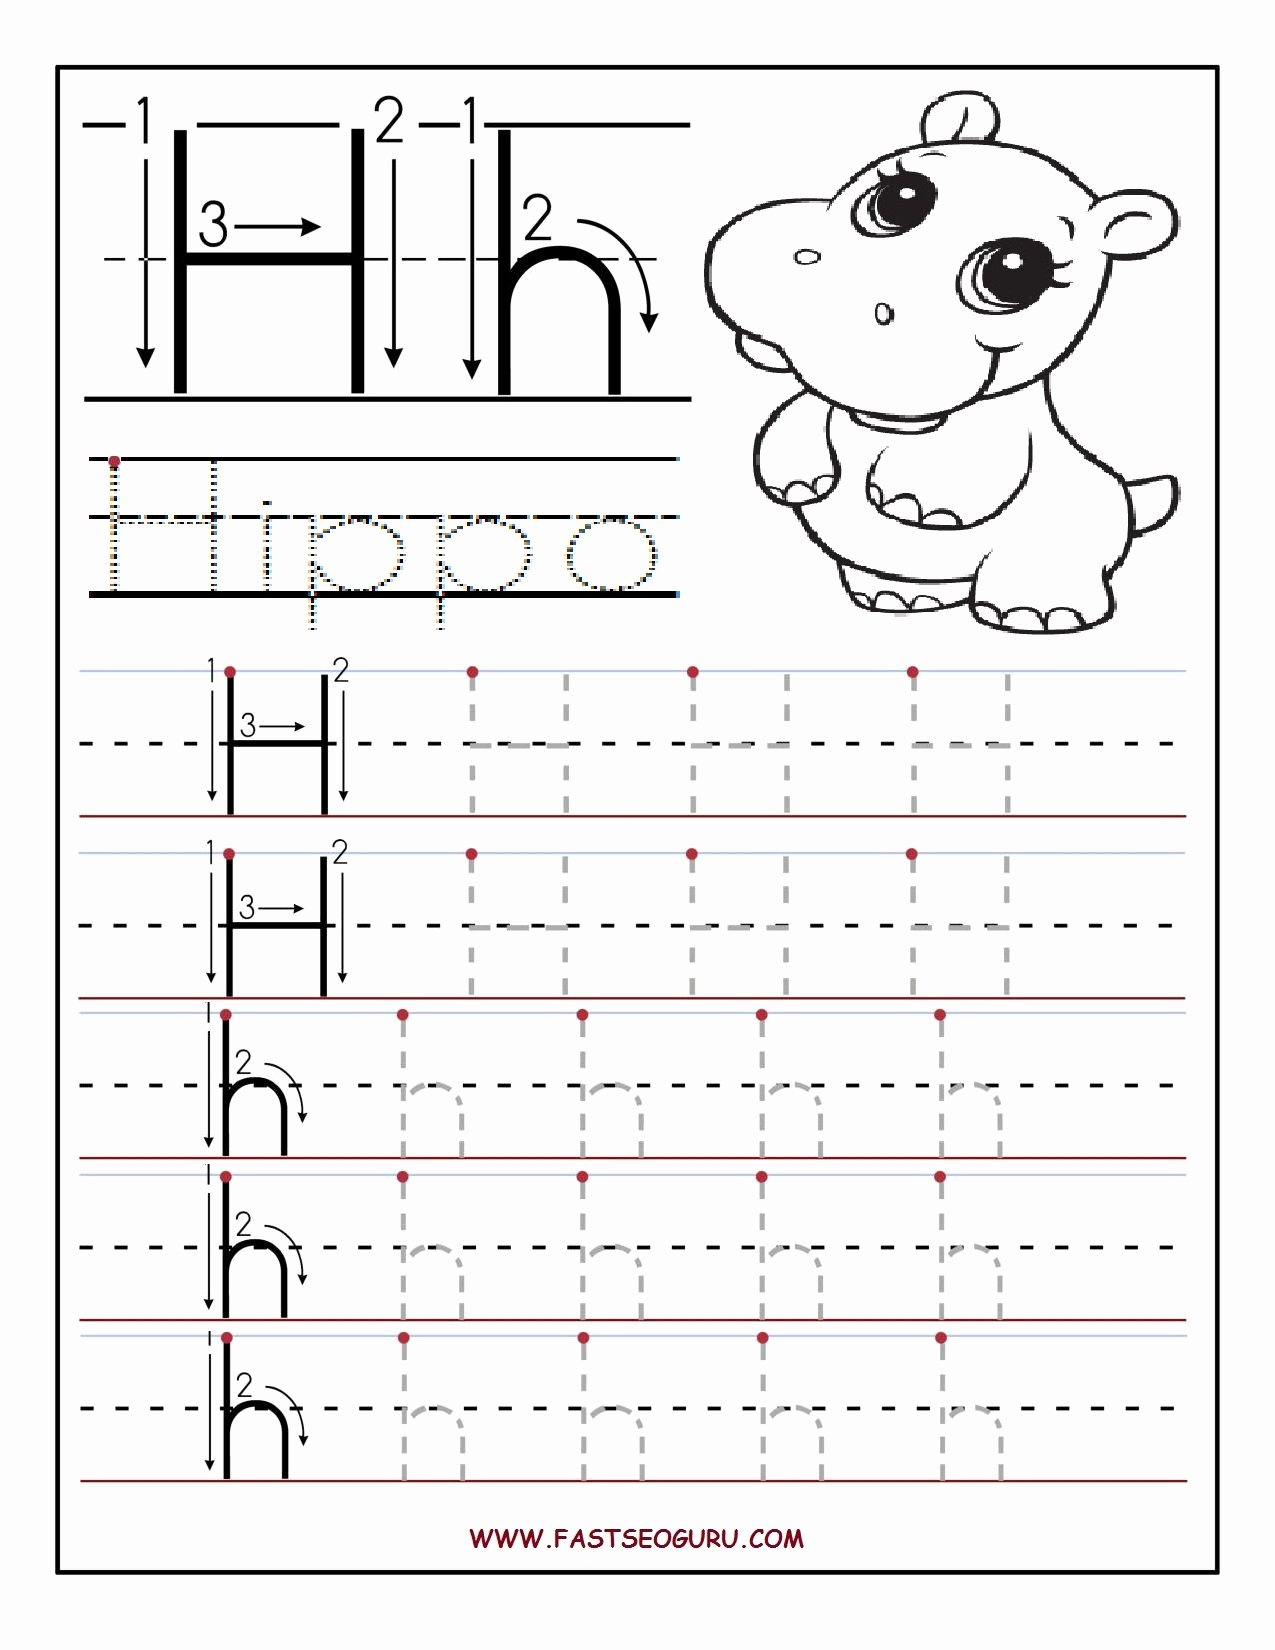 Tracing the Letter H Worksheets for Preschoolers Fresh Printable Letter H Tracing Worksheets for Preschool